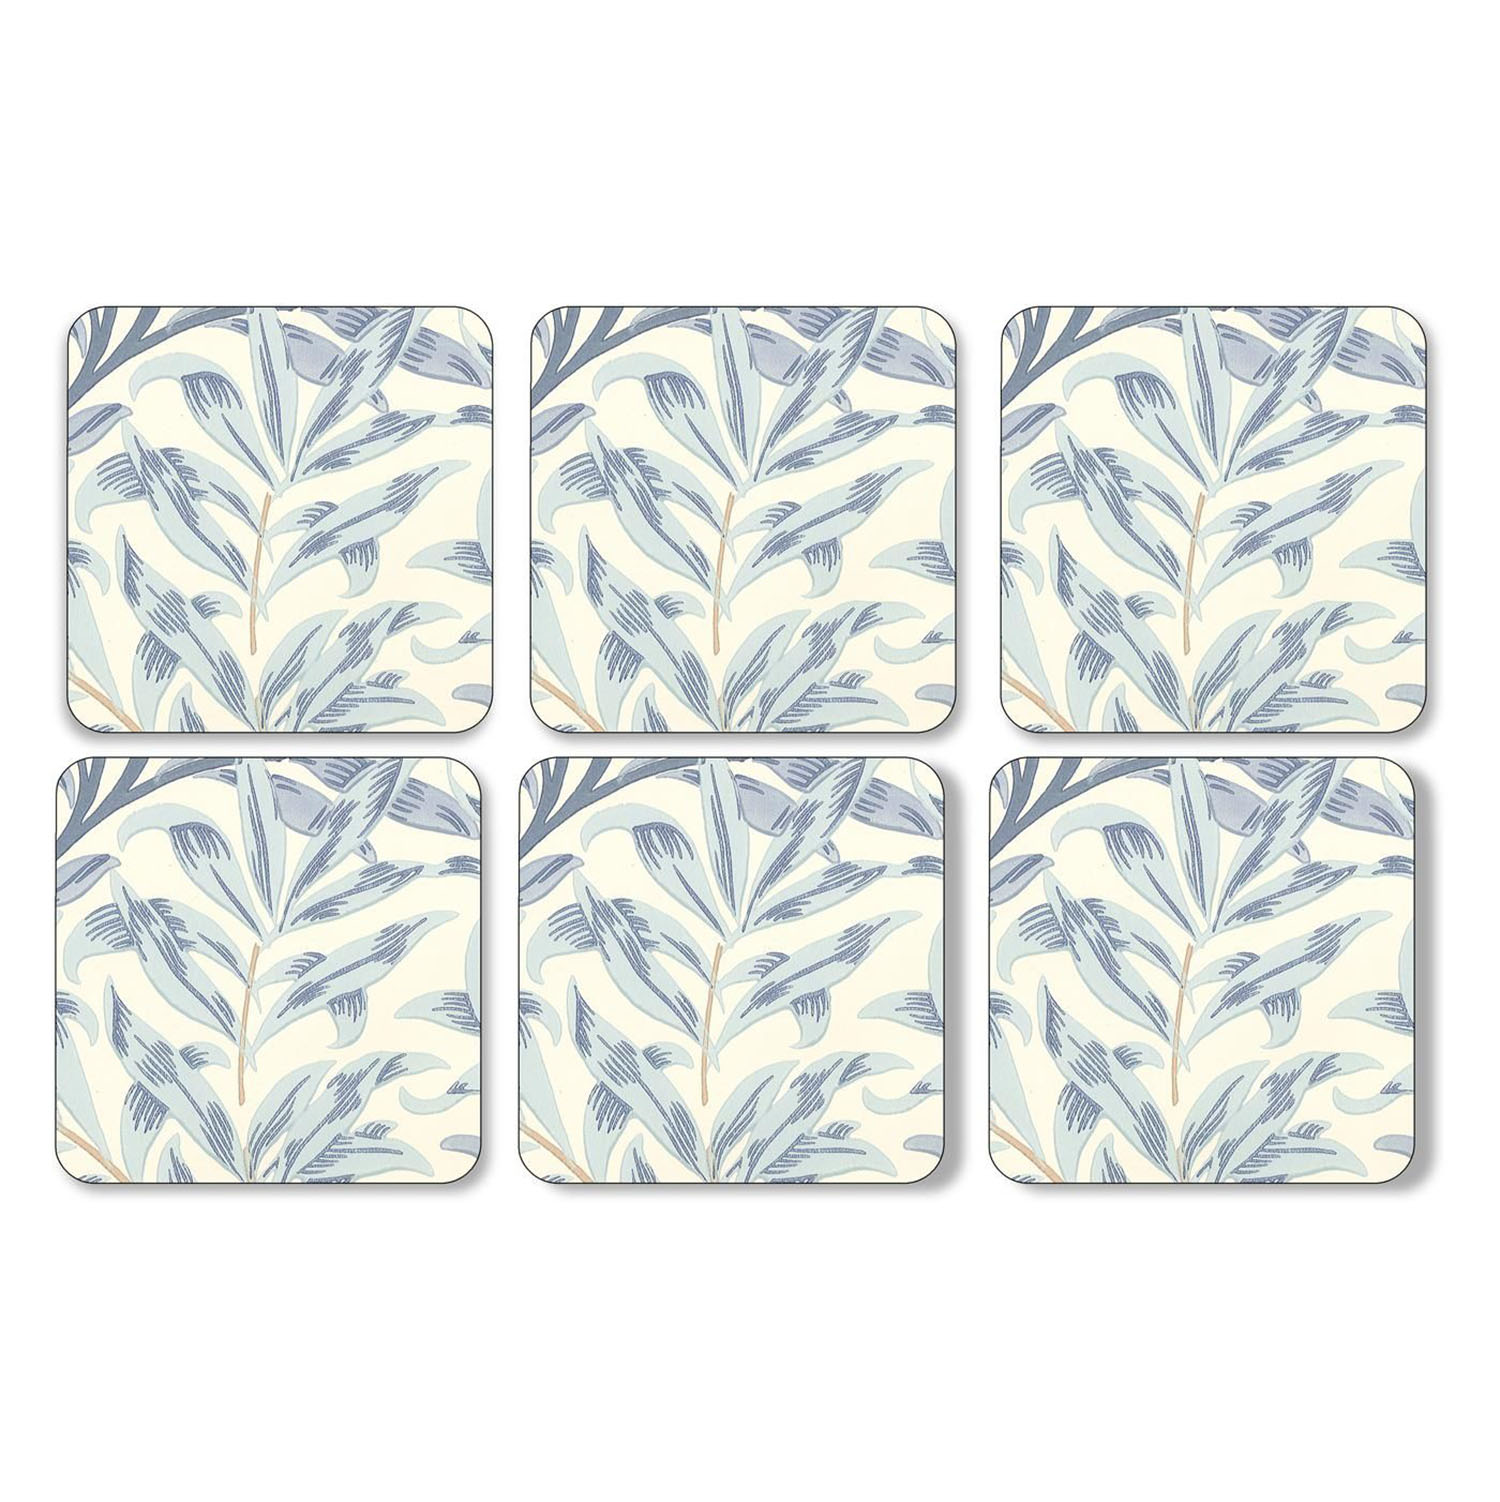 Pimpernel Willow Boughs Blue Coasters Set of 6